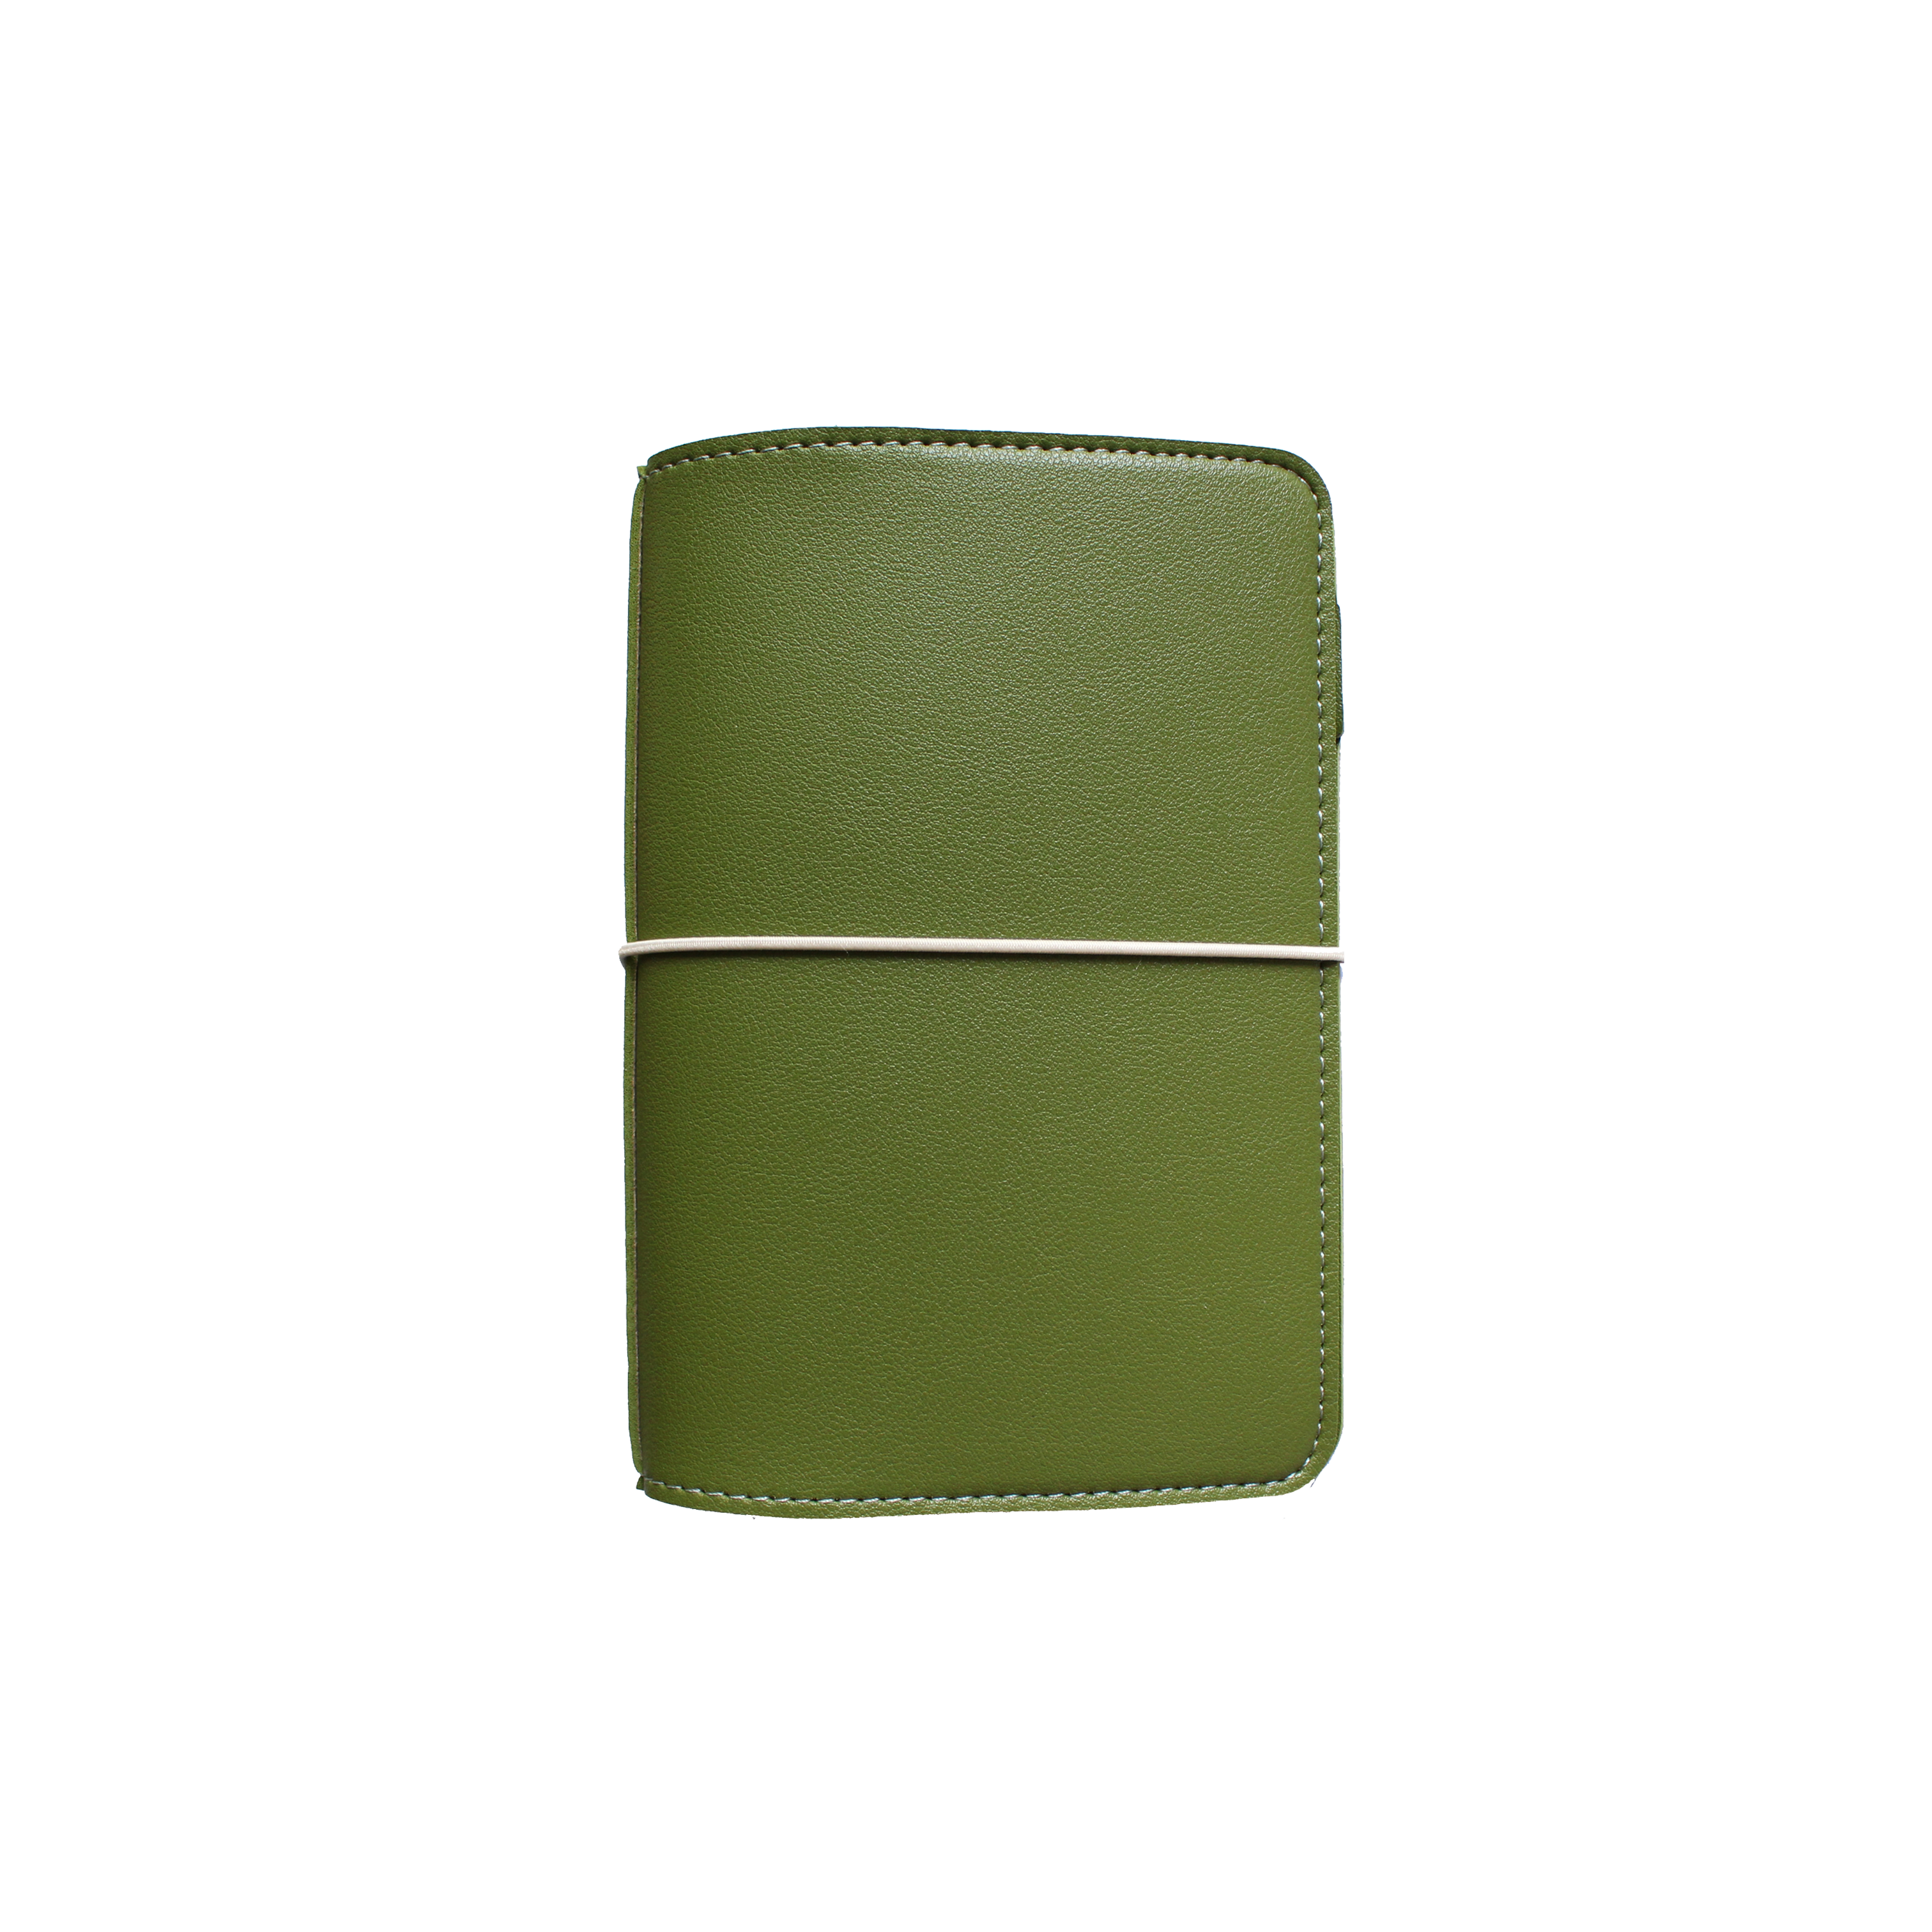 A6 Traveler's Notebook - Evergreen